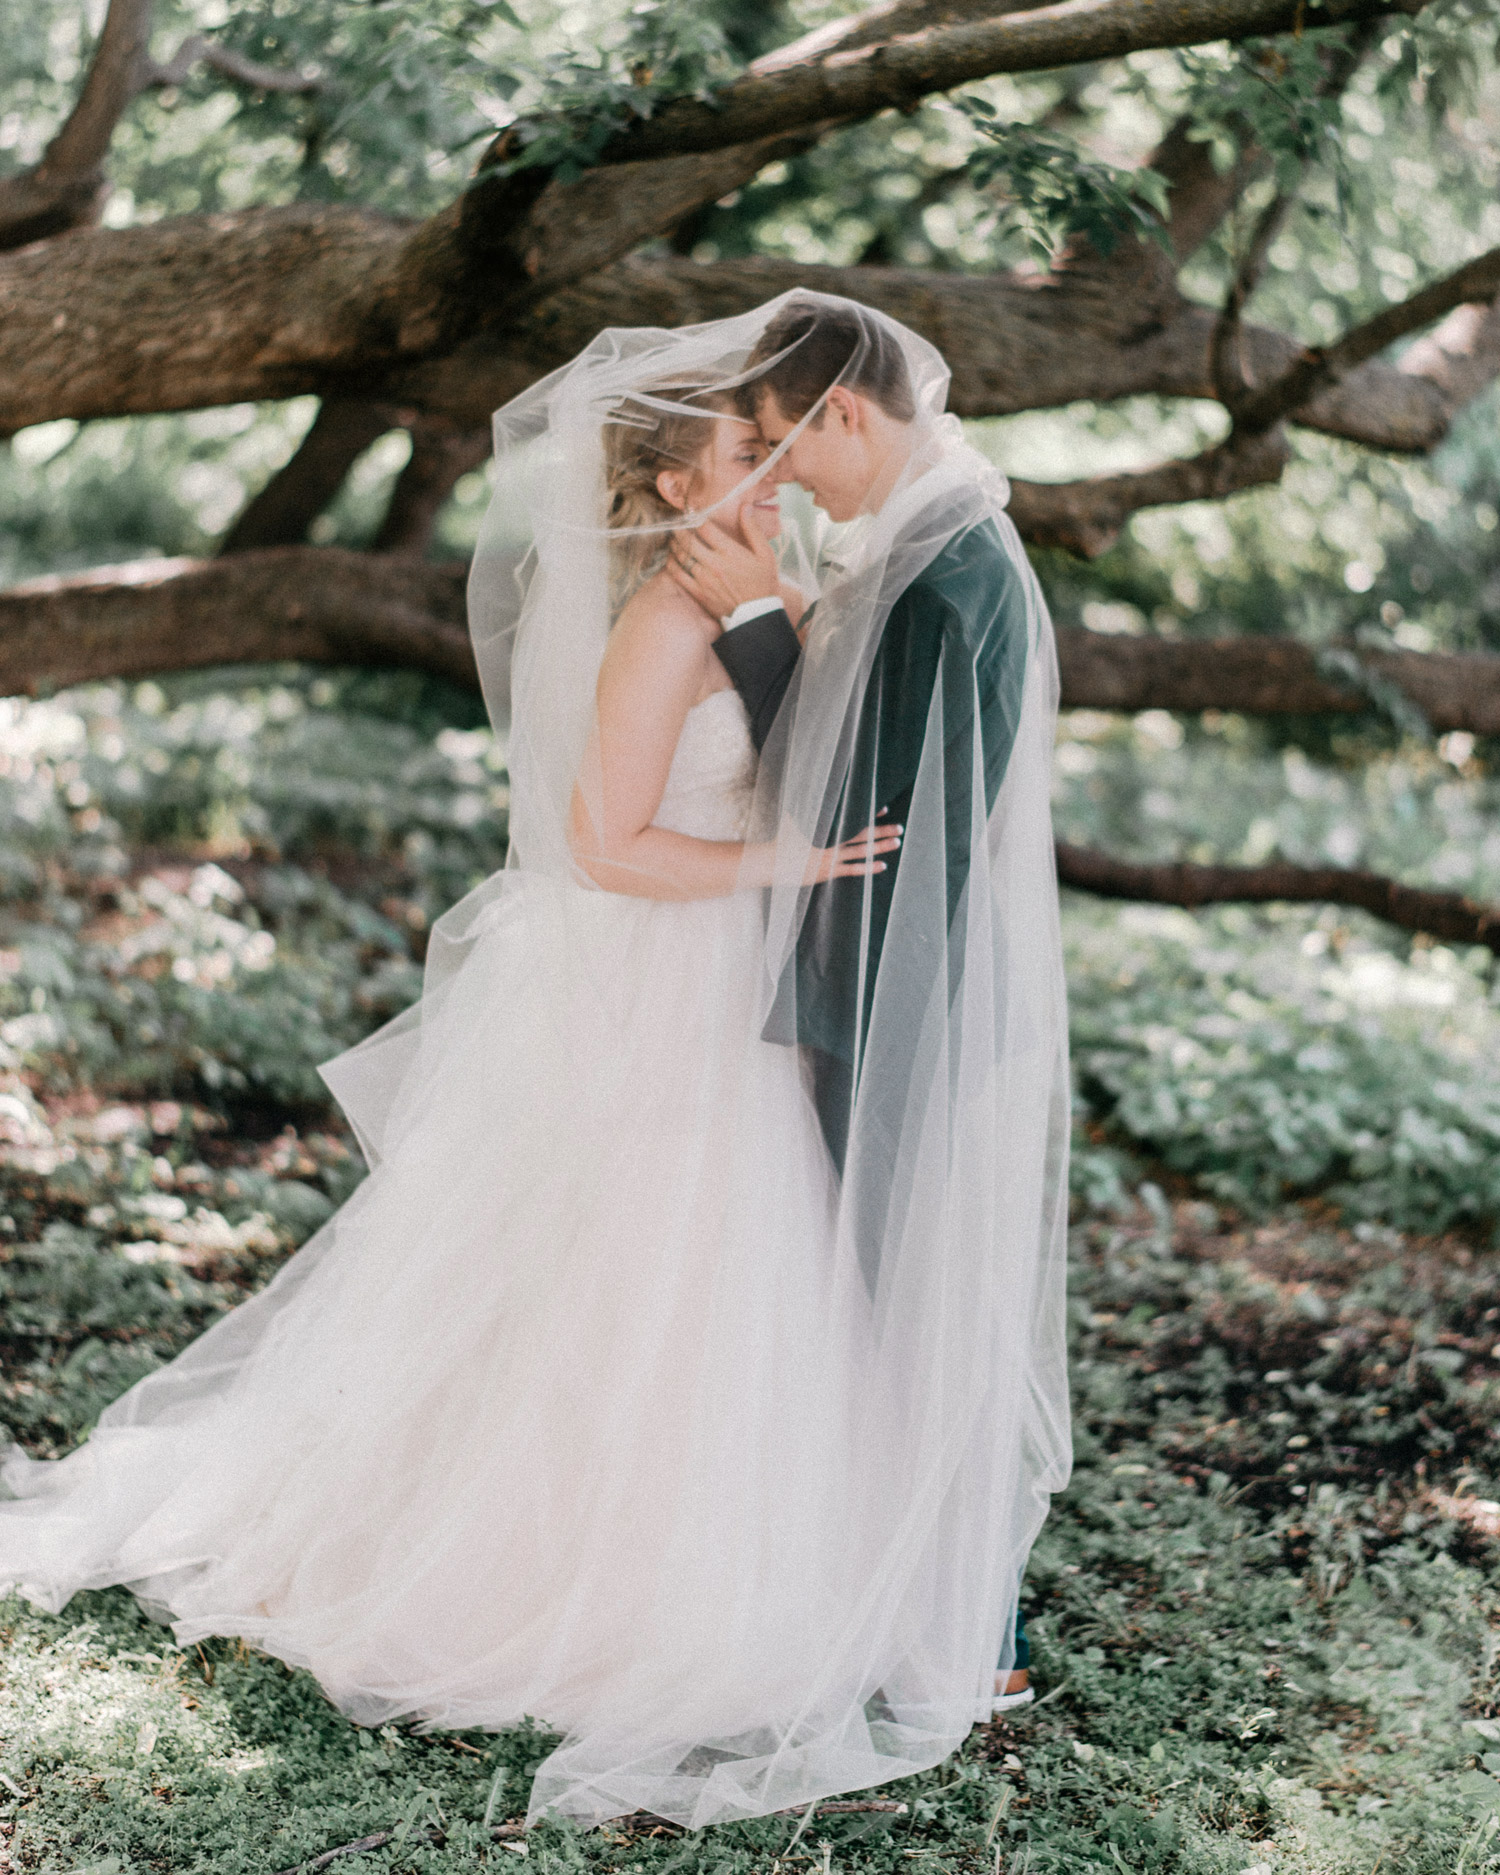 portrait of bride and groom under veil at rustic oaks by geneoh photography